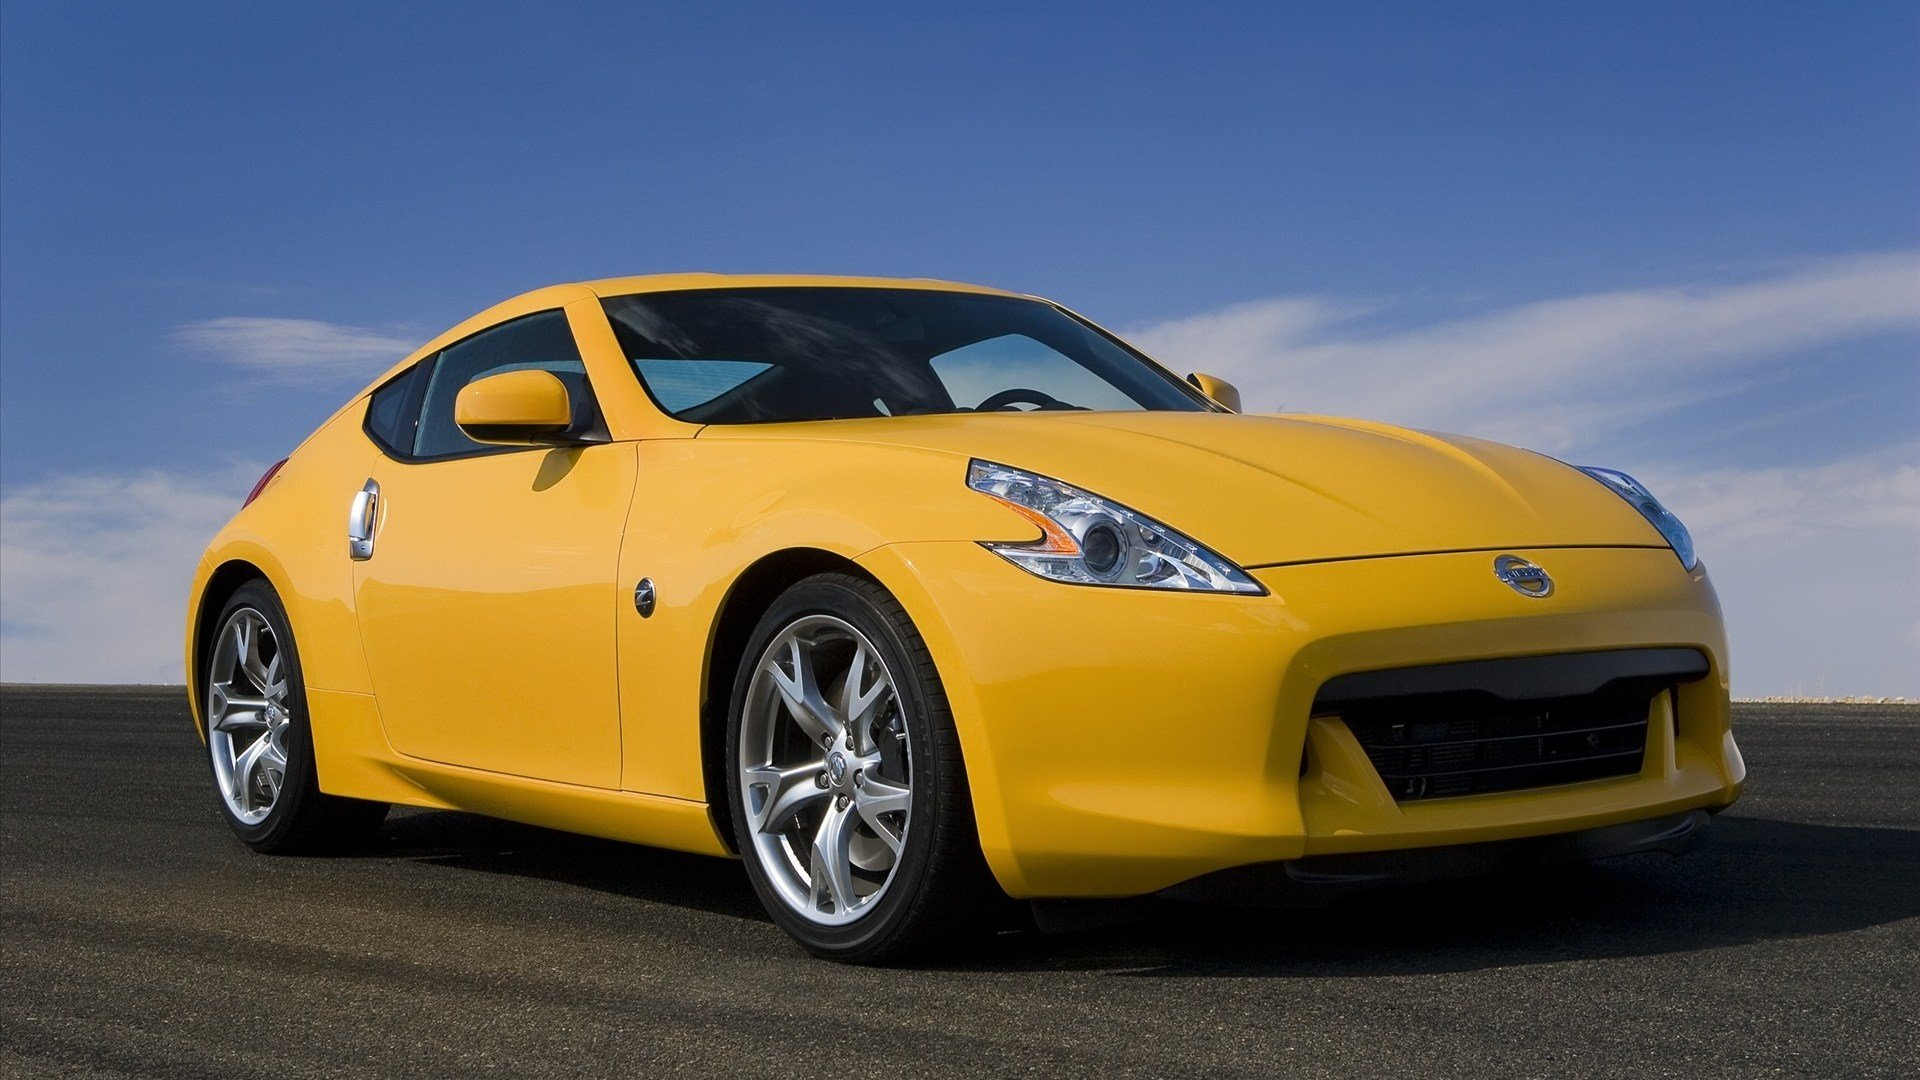 New Yellow Sports Cars On This Month